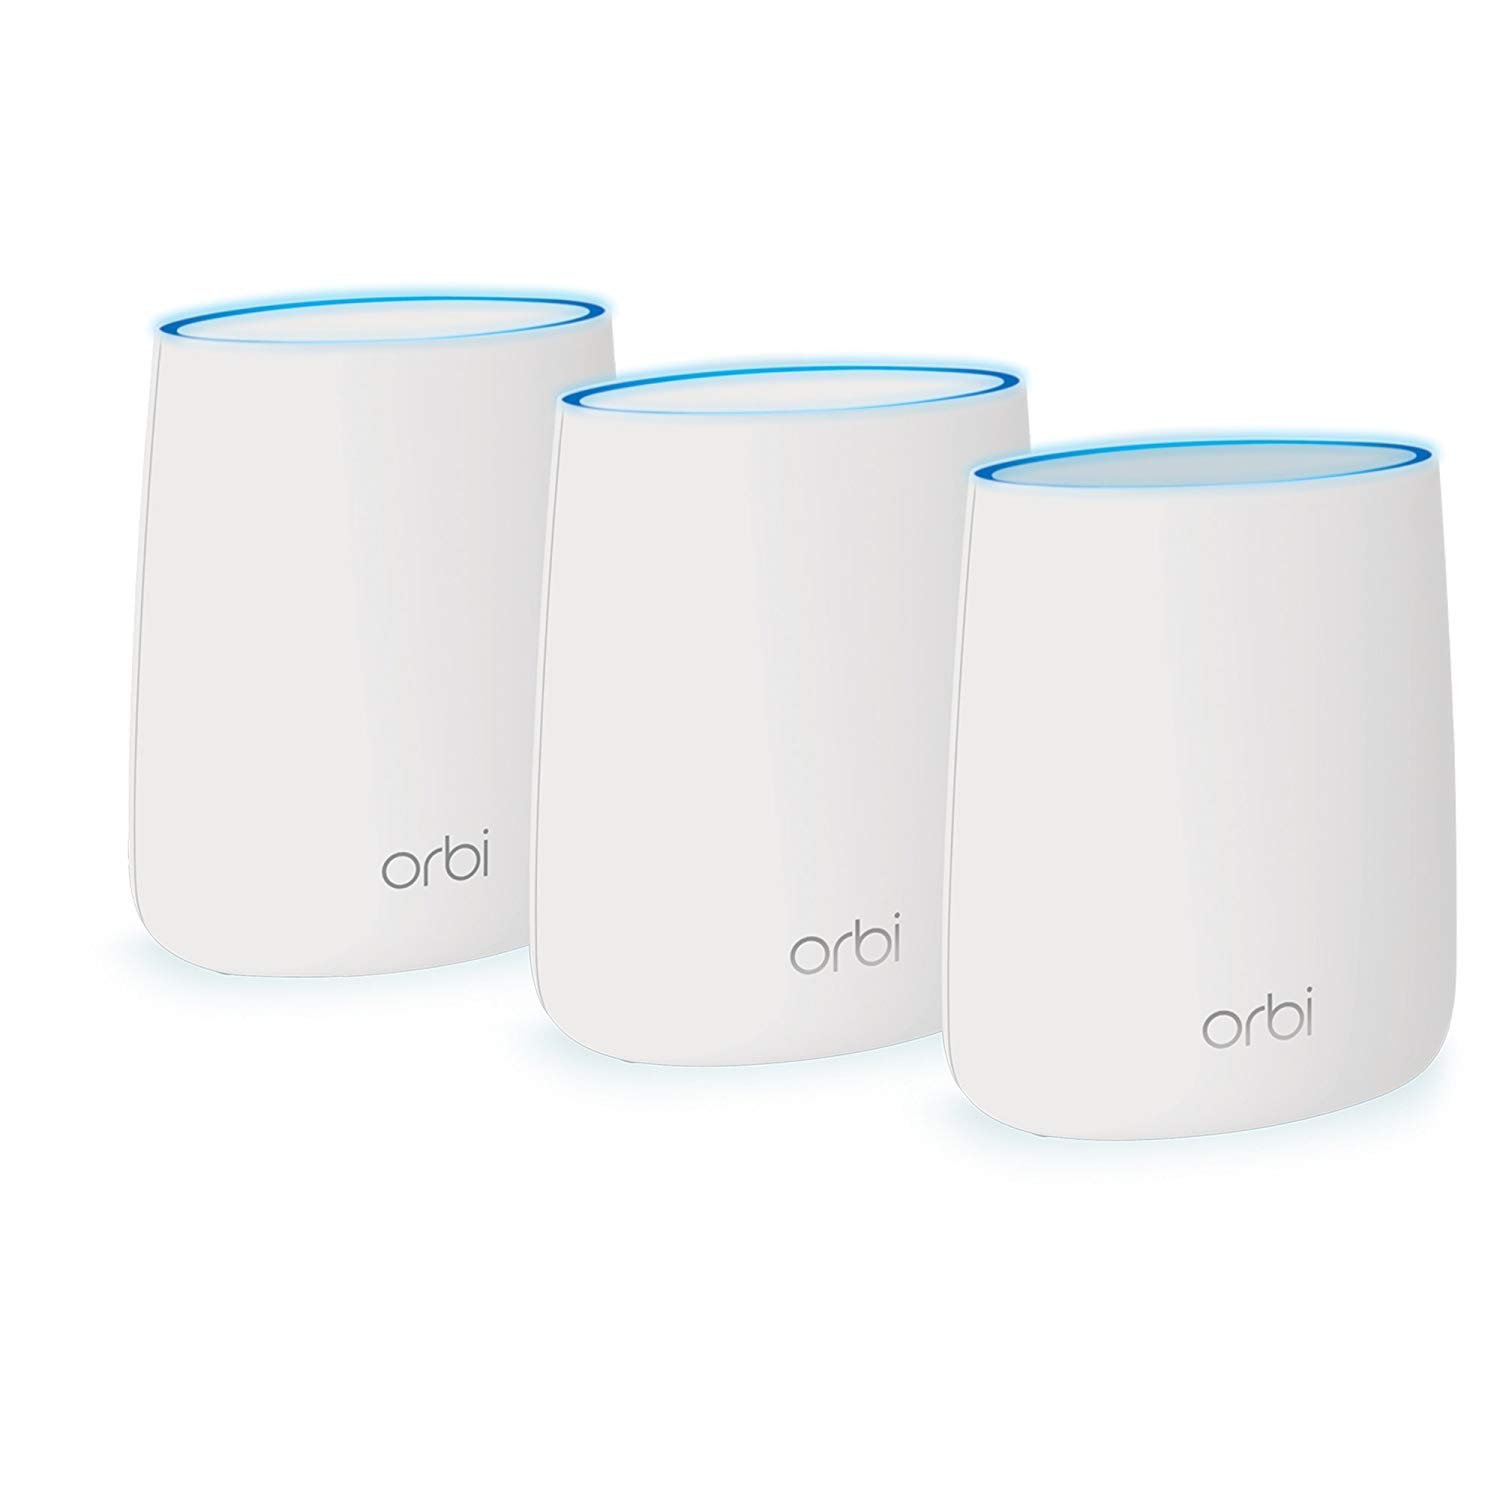 Orbi AC3000 Tri-band WiFi System Router Coverage up to 7,500 sq ft (RBK53) by NETGEAR